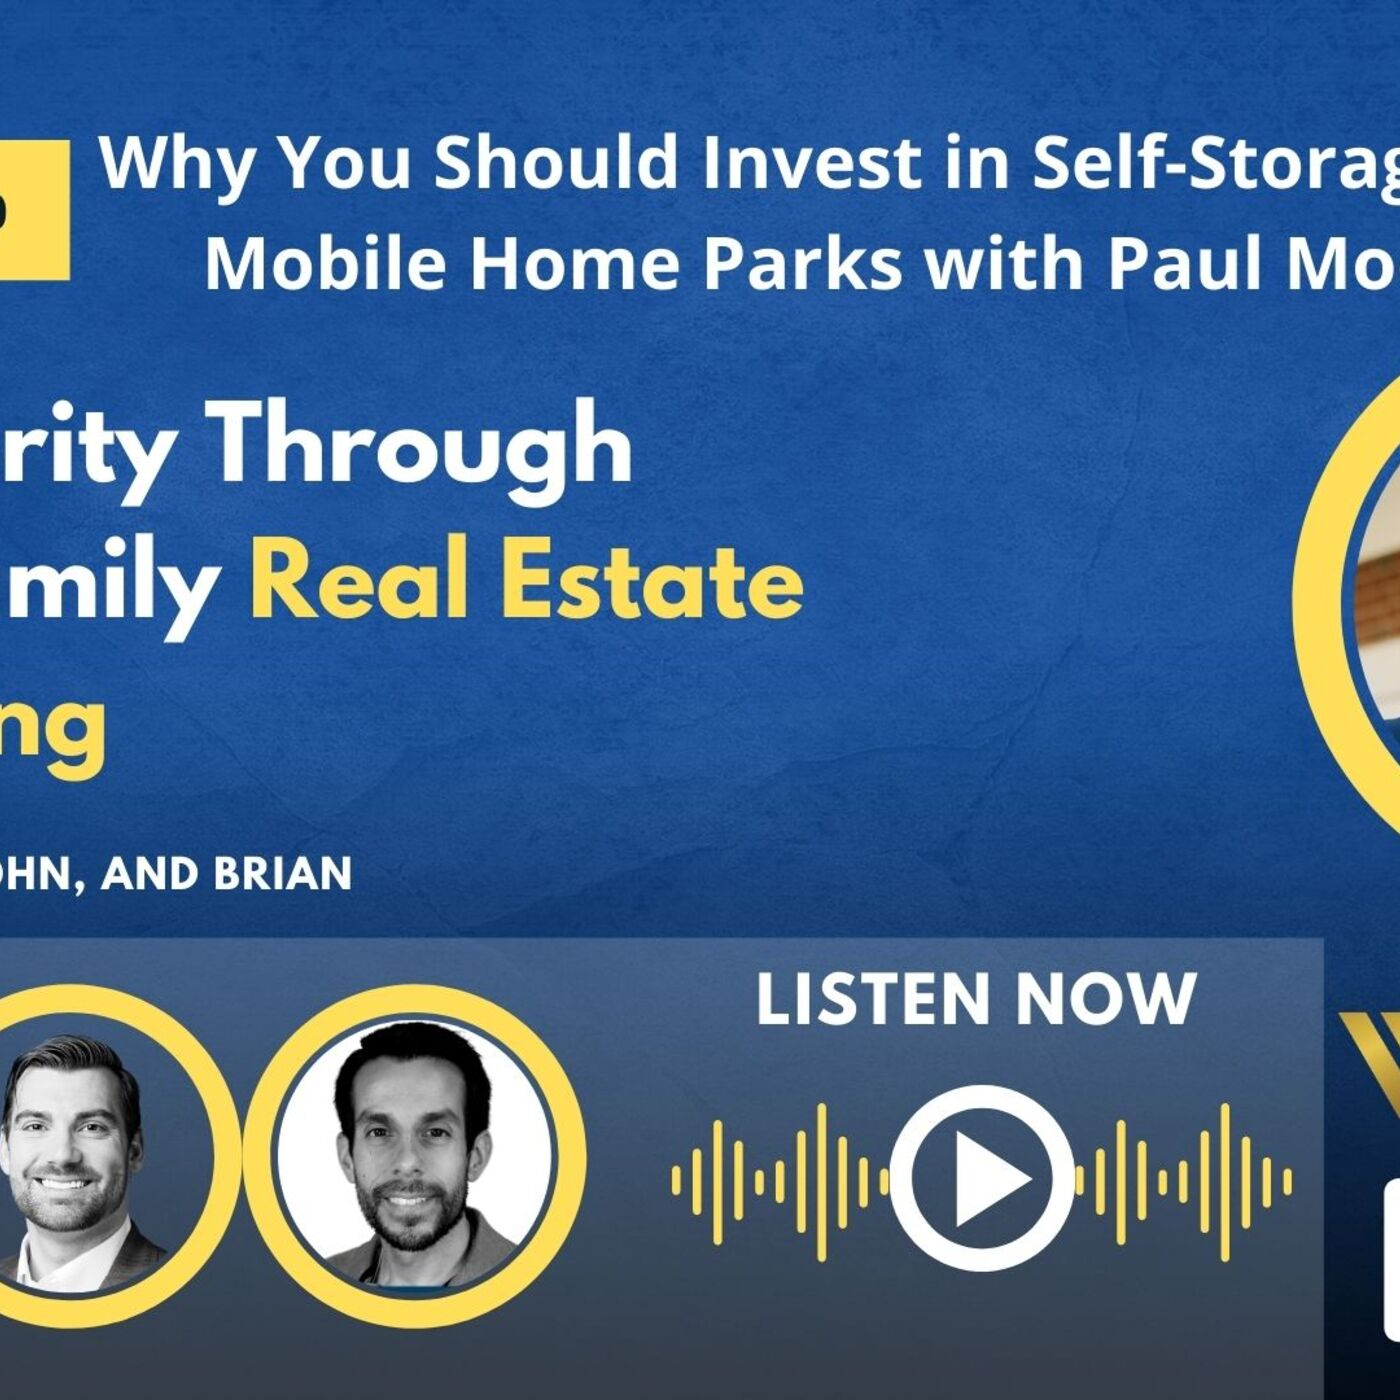 Why You Should Invest in Self-Storage and Mobile Home Parks with Paul Moore